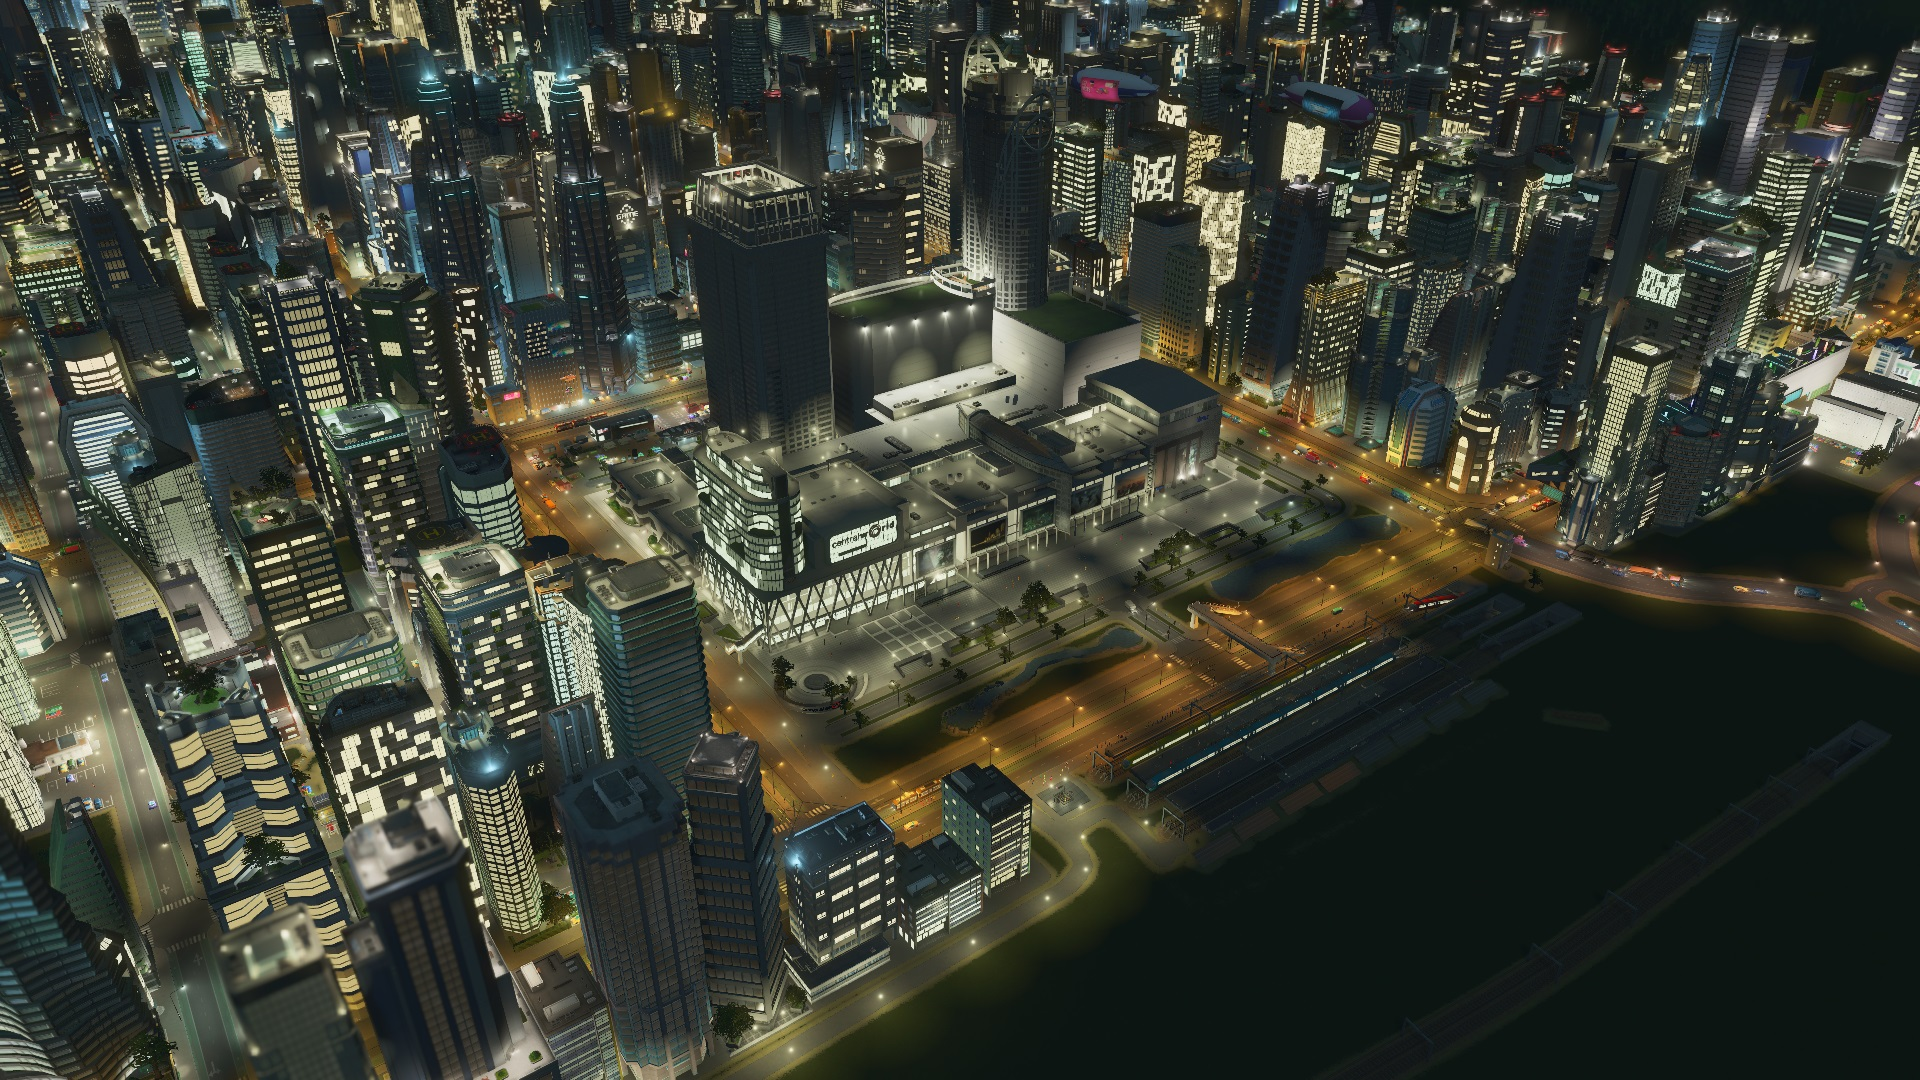 Cities Skylines Screenshot 2020.08.09 konferenc center.jpg